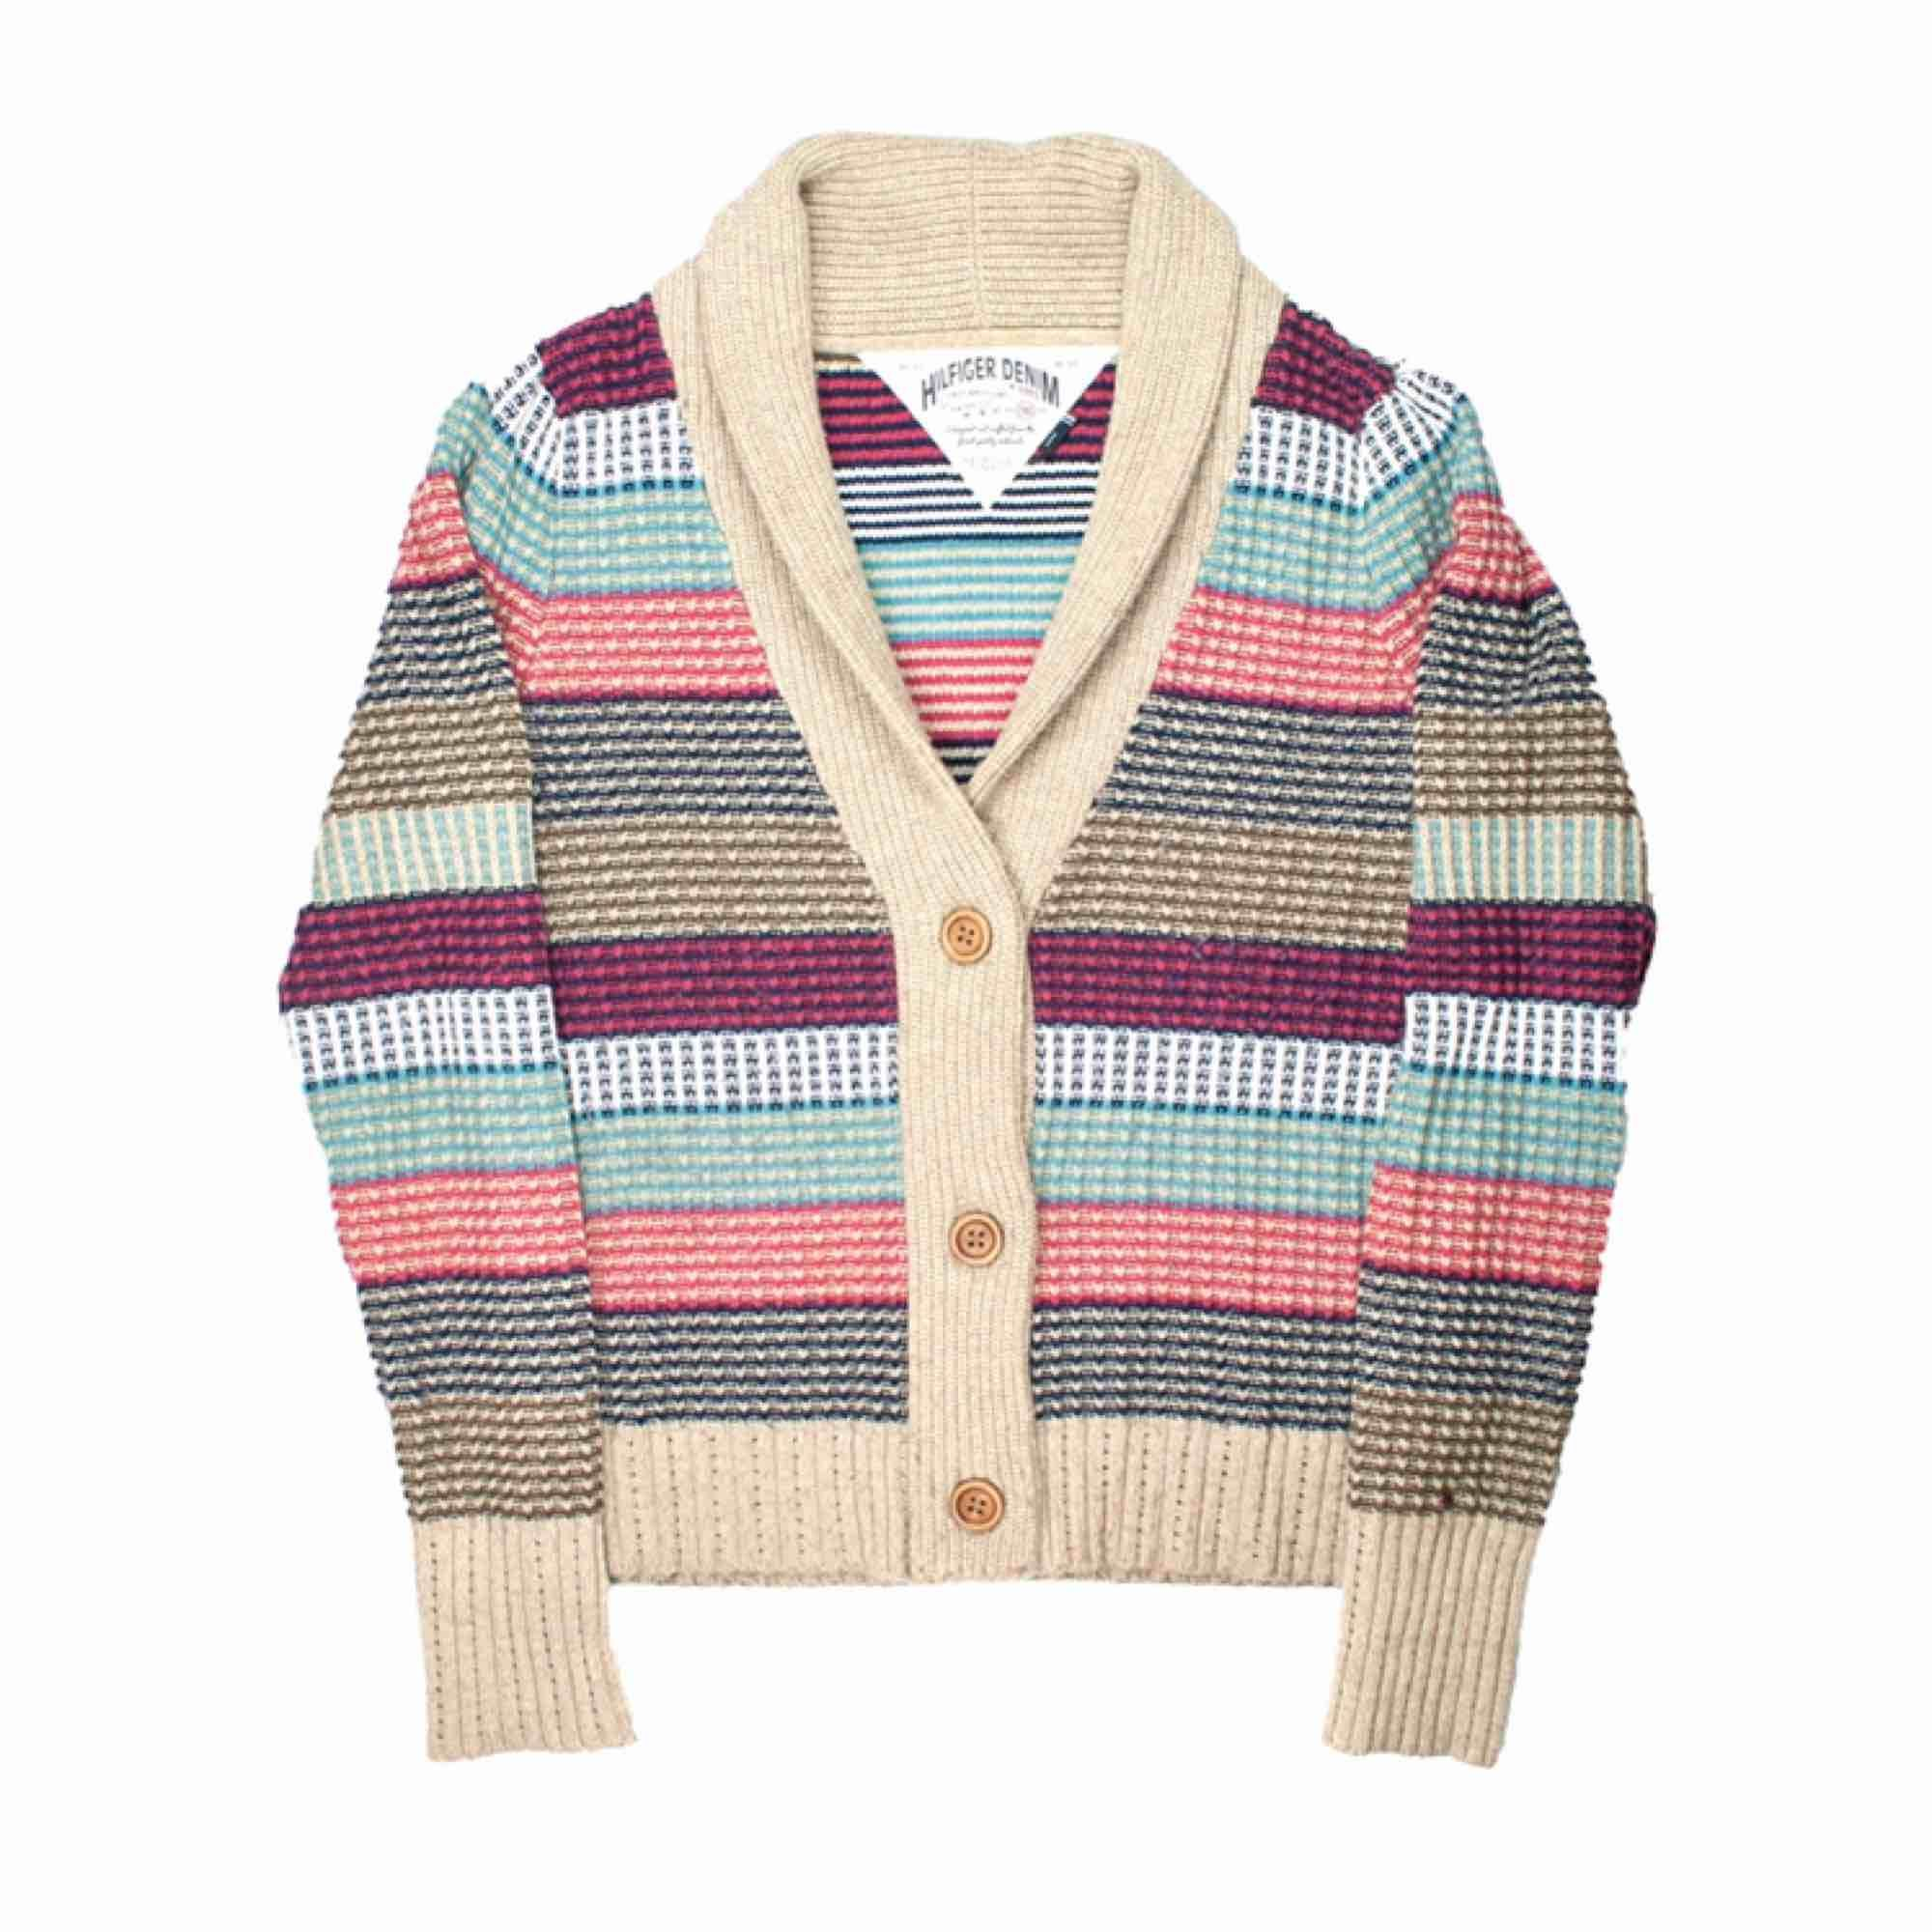 Tommy Hilfiger Denim cotton wool blend striped cardigan Label: L, but fits best XS-S Model: 165/XS Measurements (flat): Length: 65 cm pit to pit: 48 cm Price is final! Free shipping! Ask for the full description! No returns!. Tröjor & Koftor.